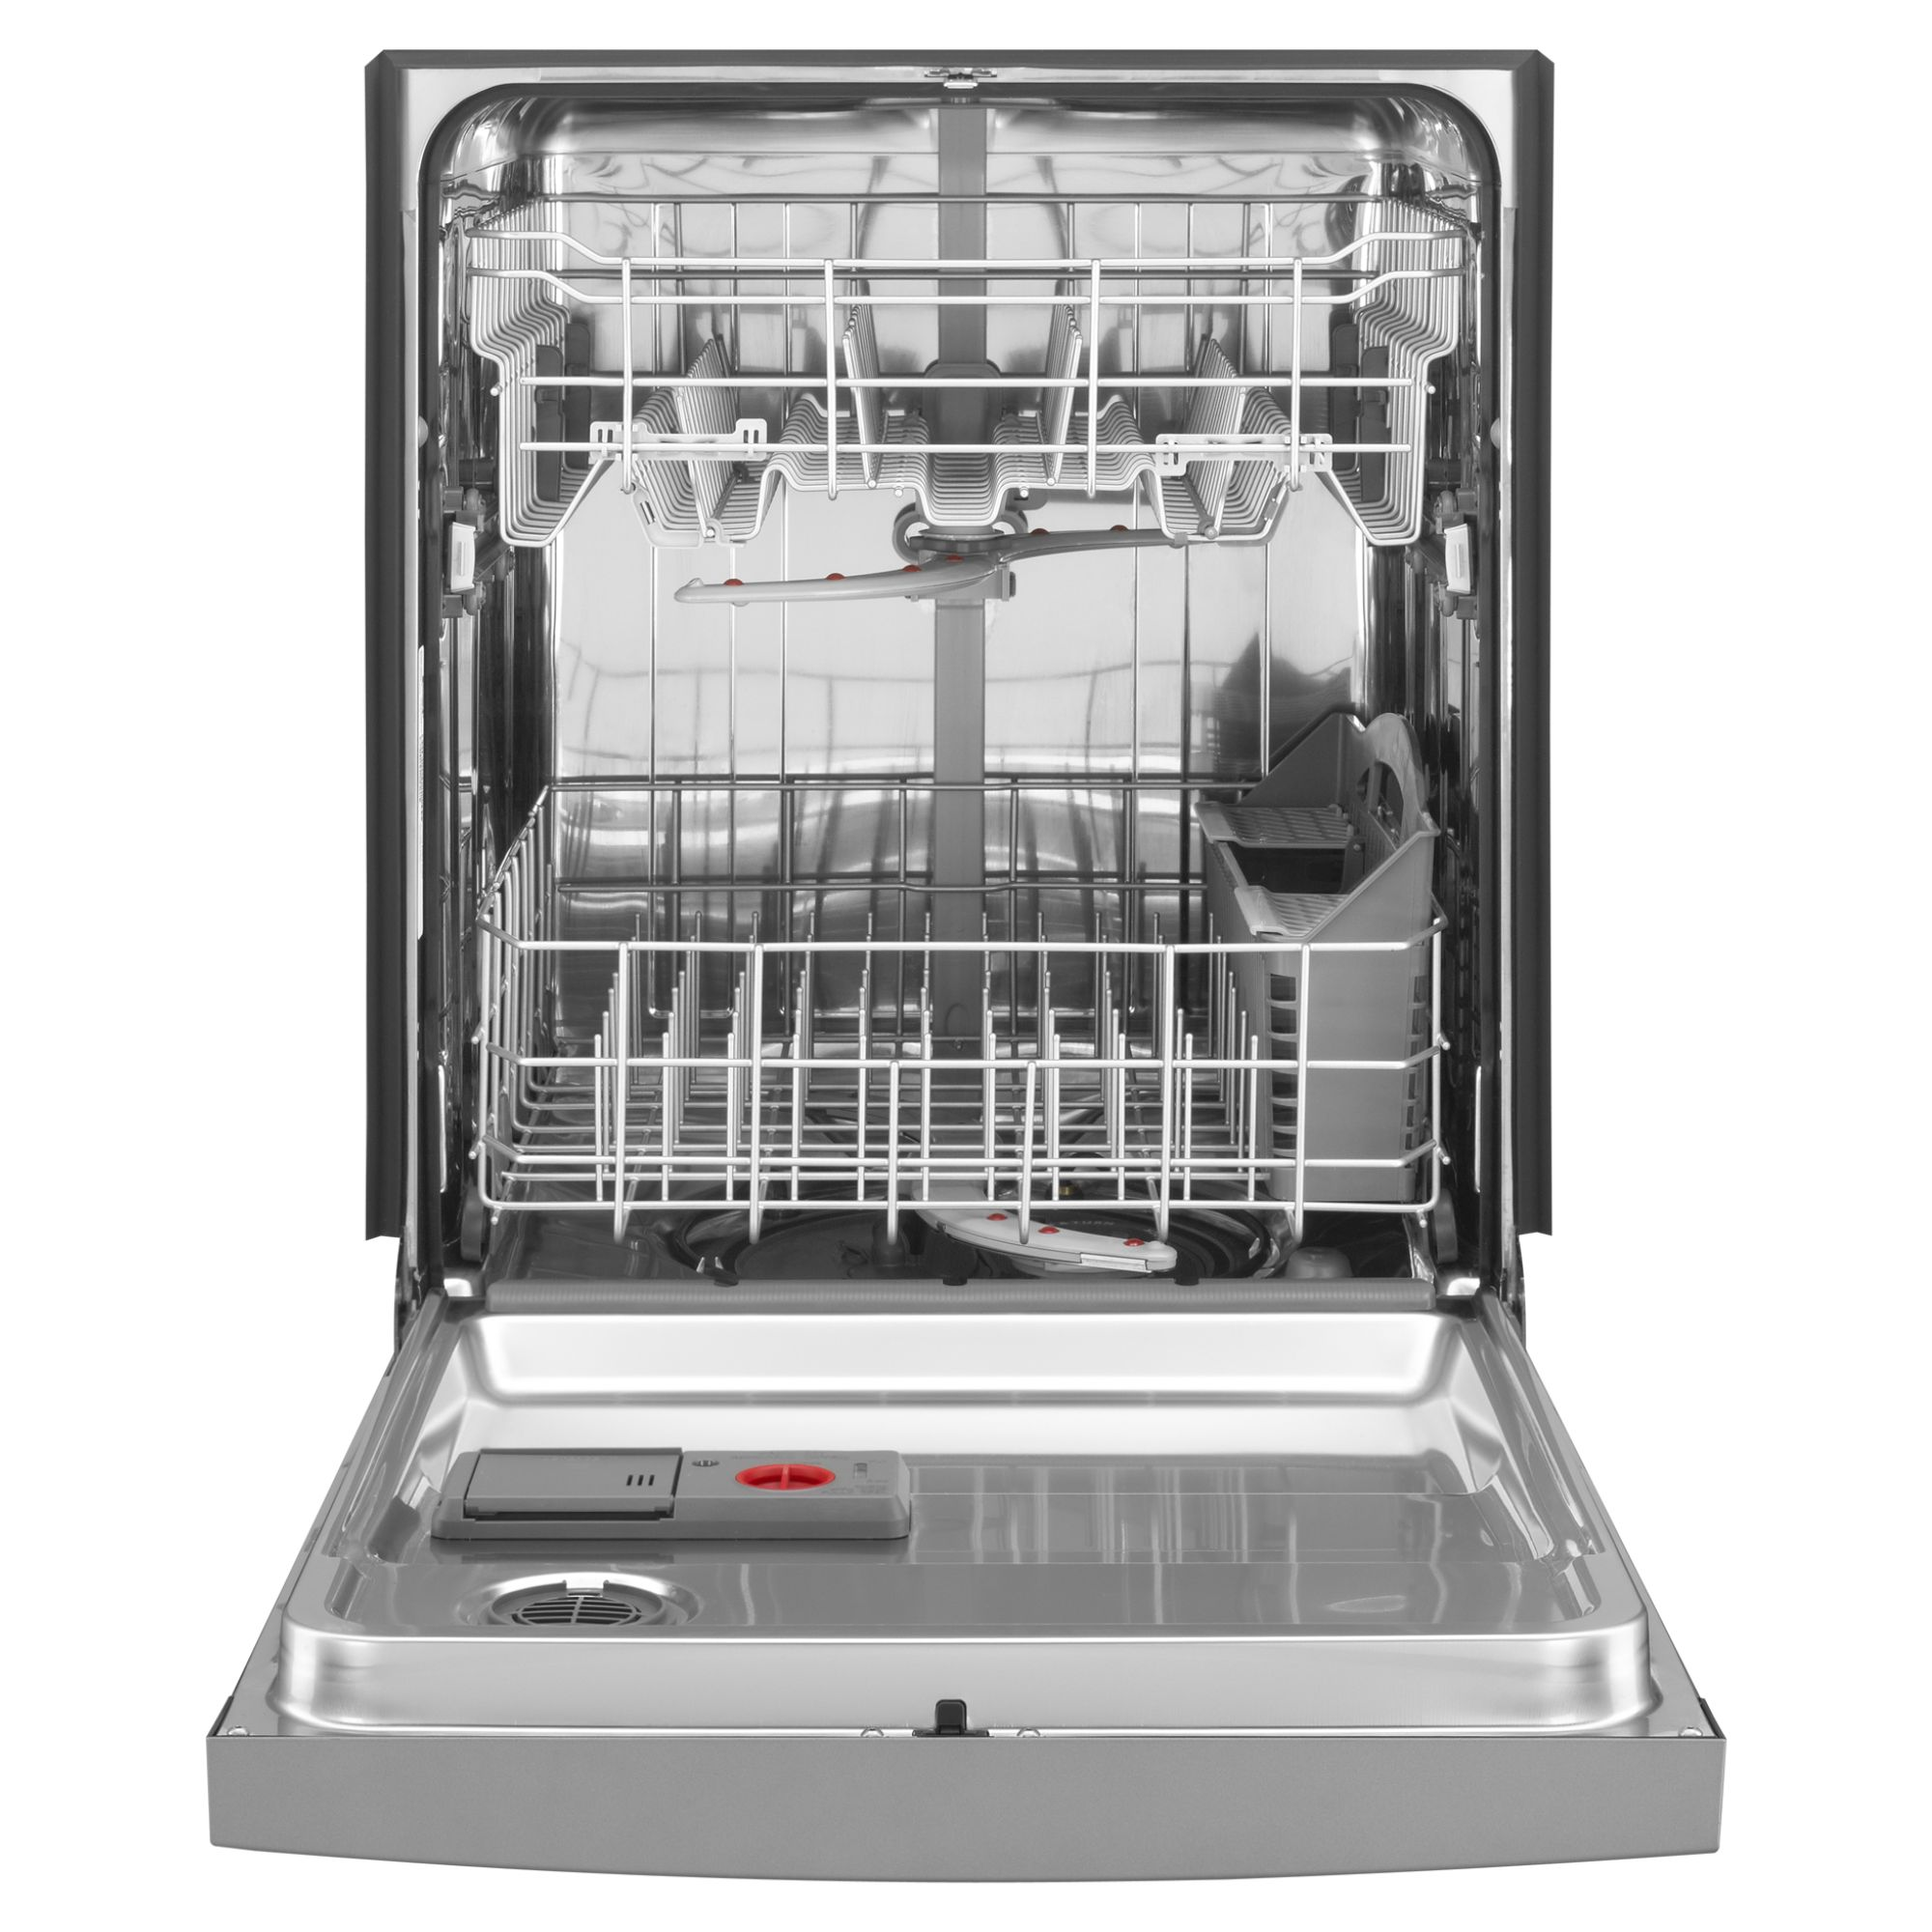 "Kenmore 24"" Built-In Dishwasher w/ Stainless Steel Tub & Stainless-Look Console"